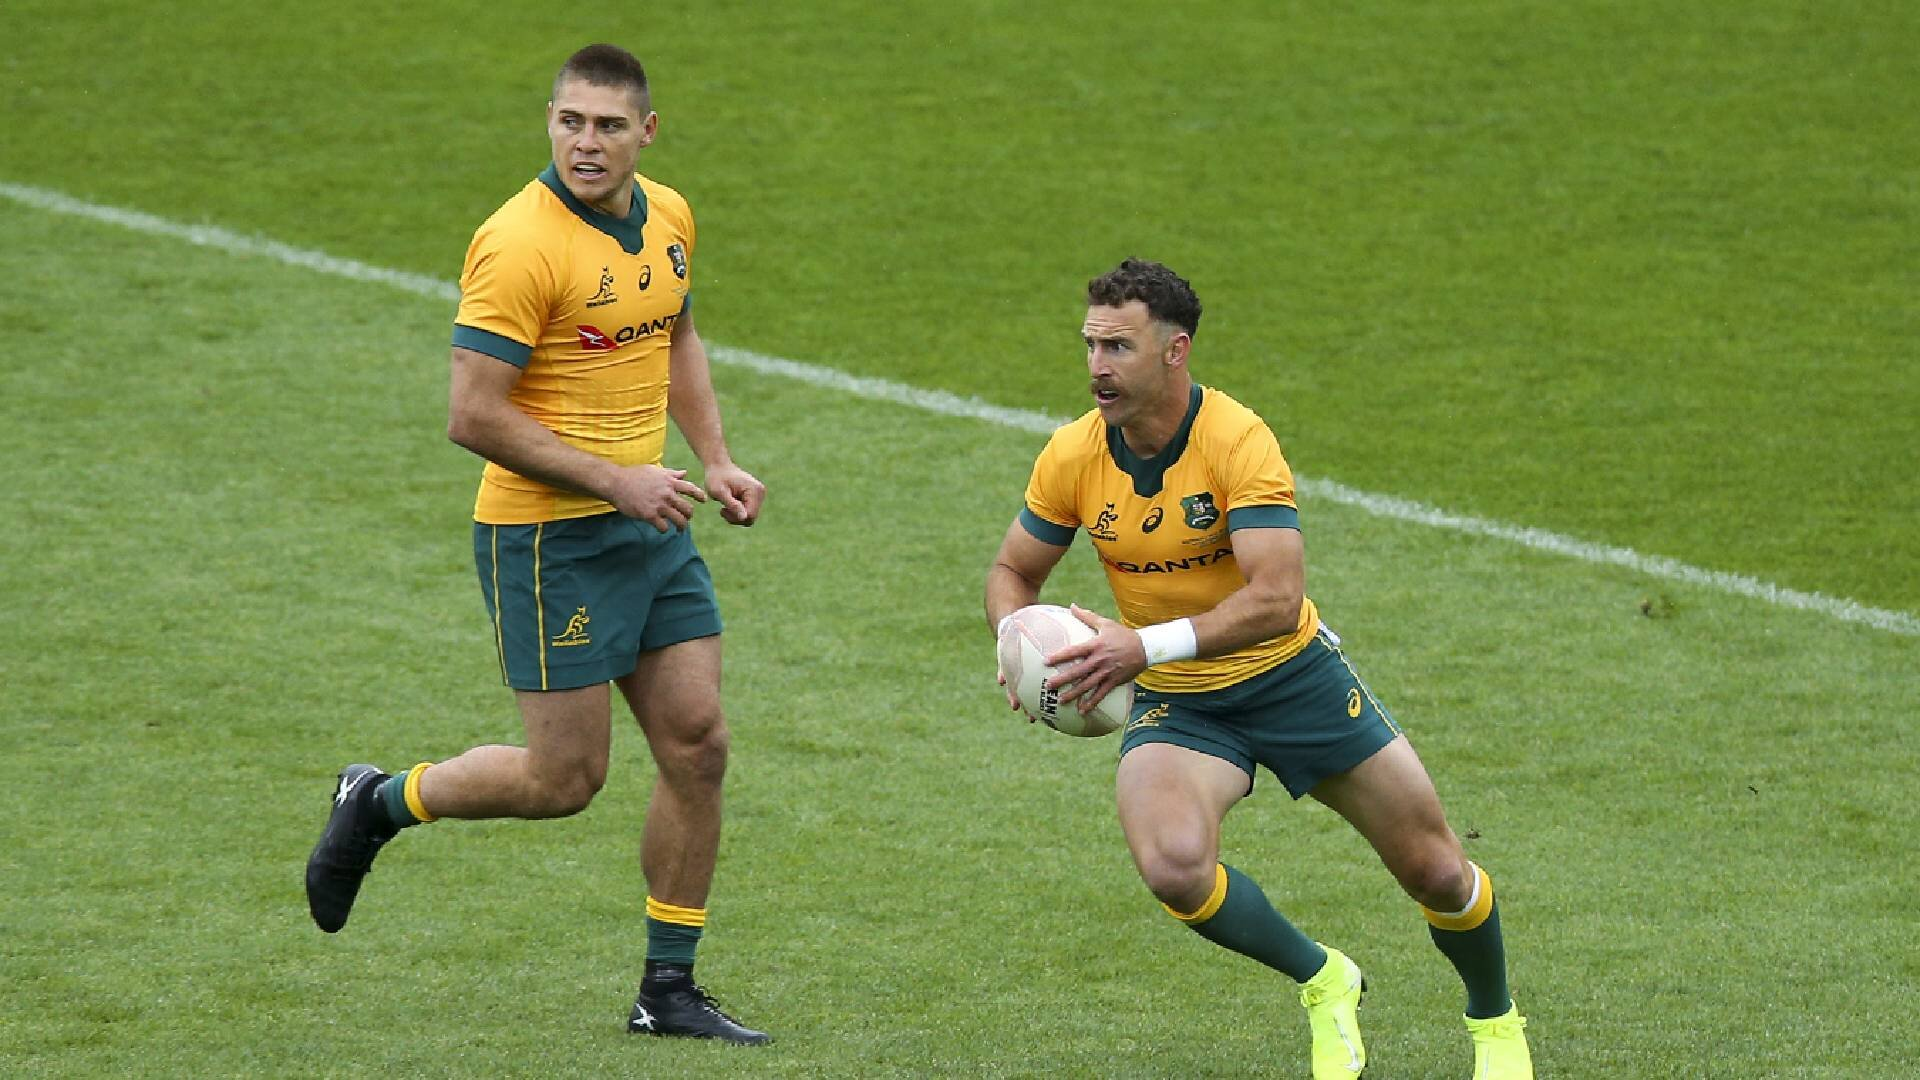 The Wallabies star set to be targeted by All Blacks in second Bledisloe Cup test